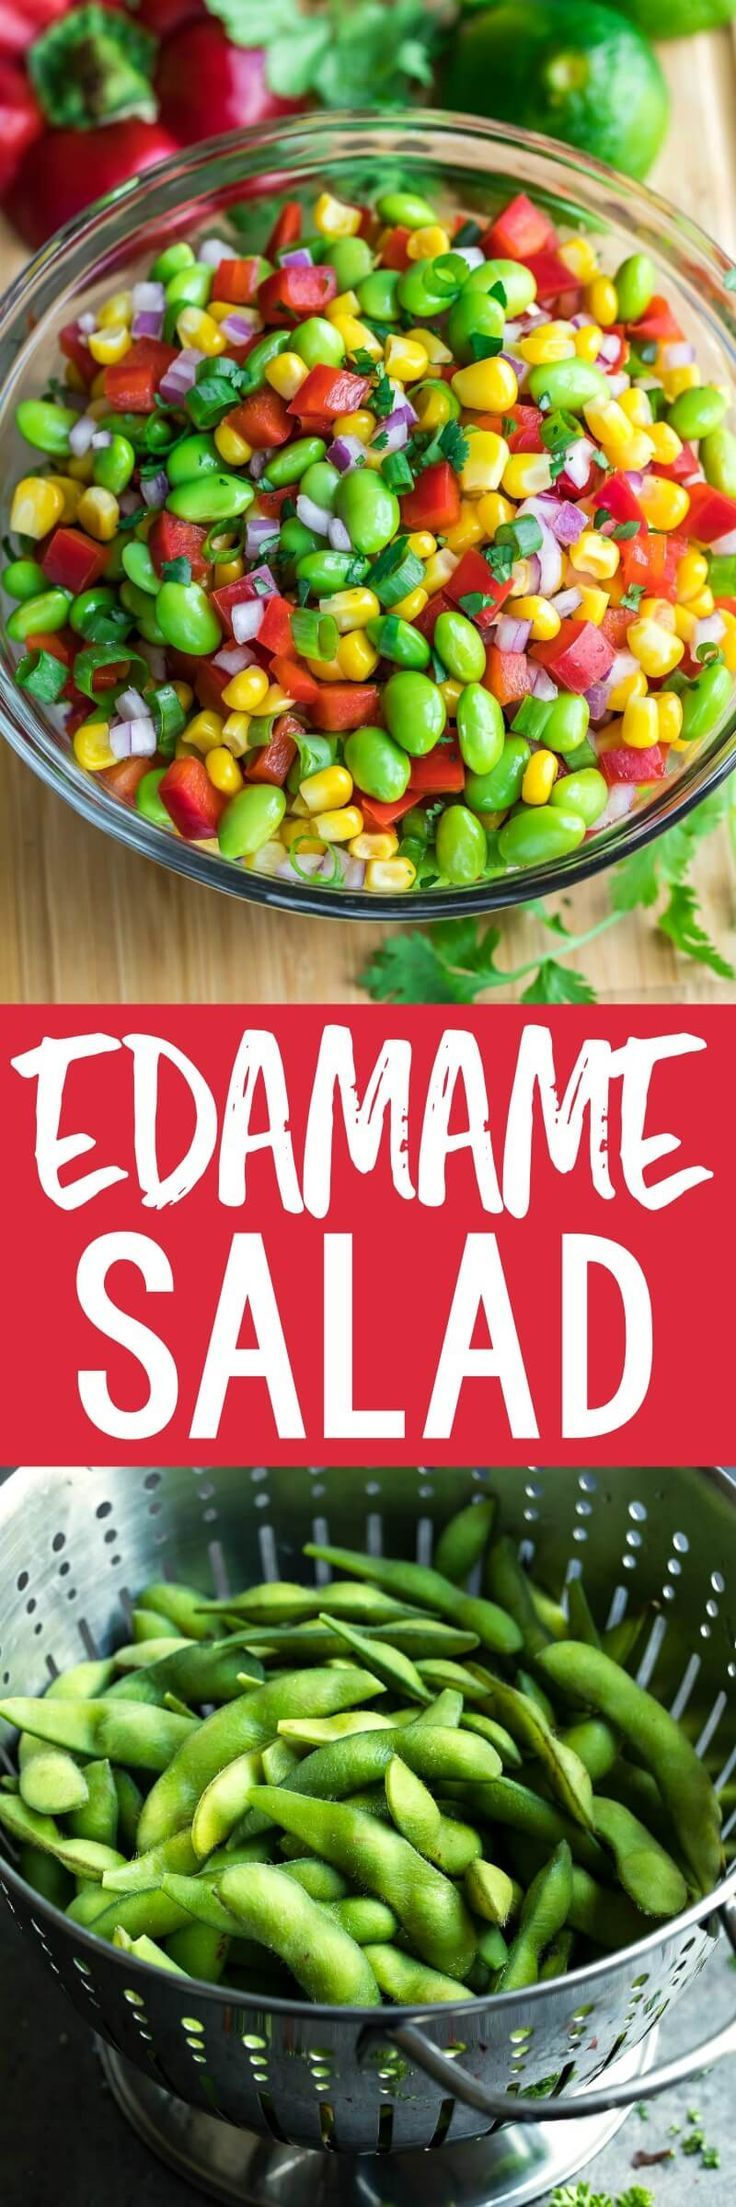 Edamame Salad with Cilantro Lime Dressing images